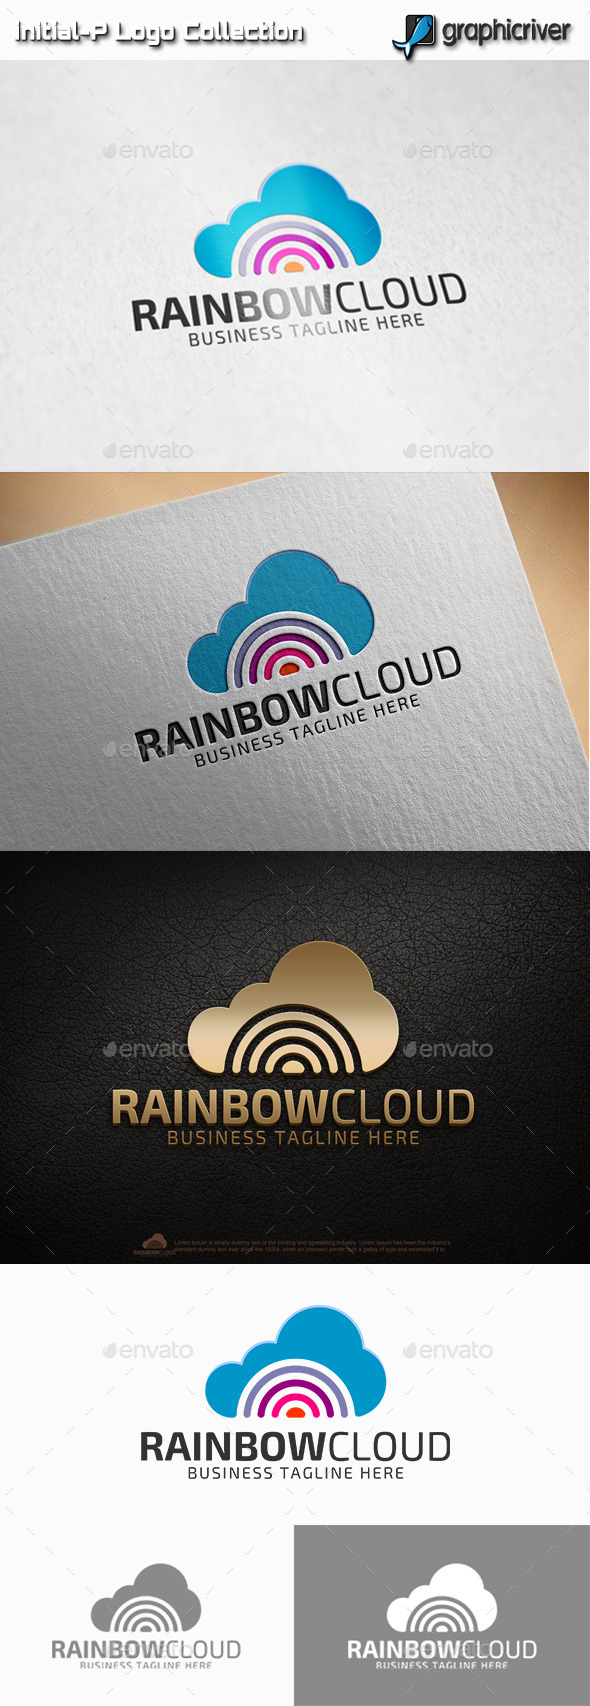 GraphicRiver Rainbow Cloud Logo 11204525